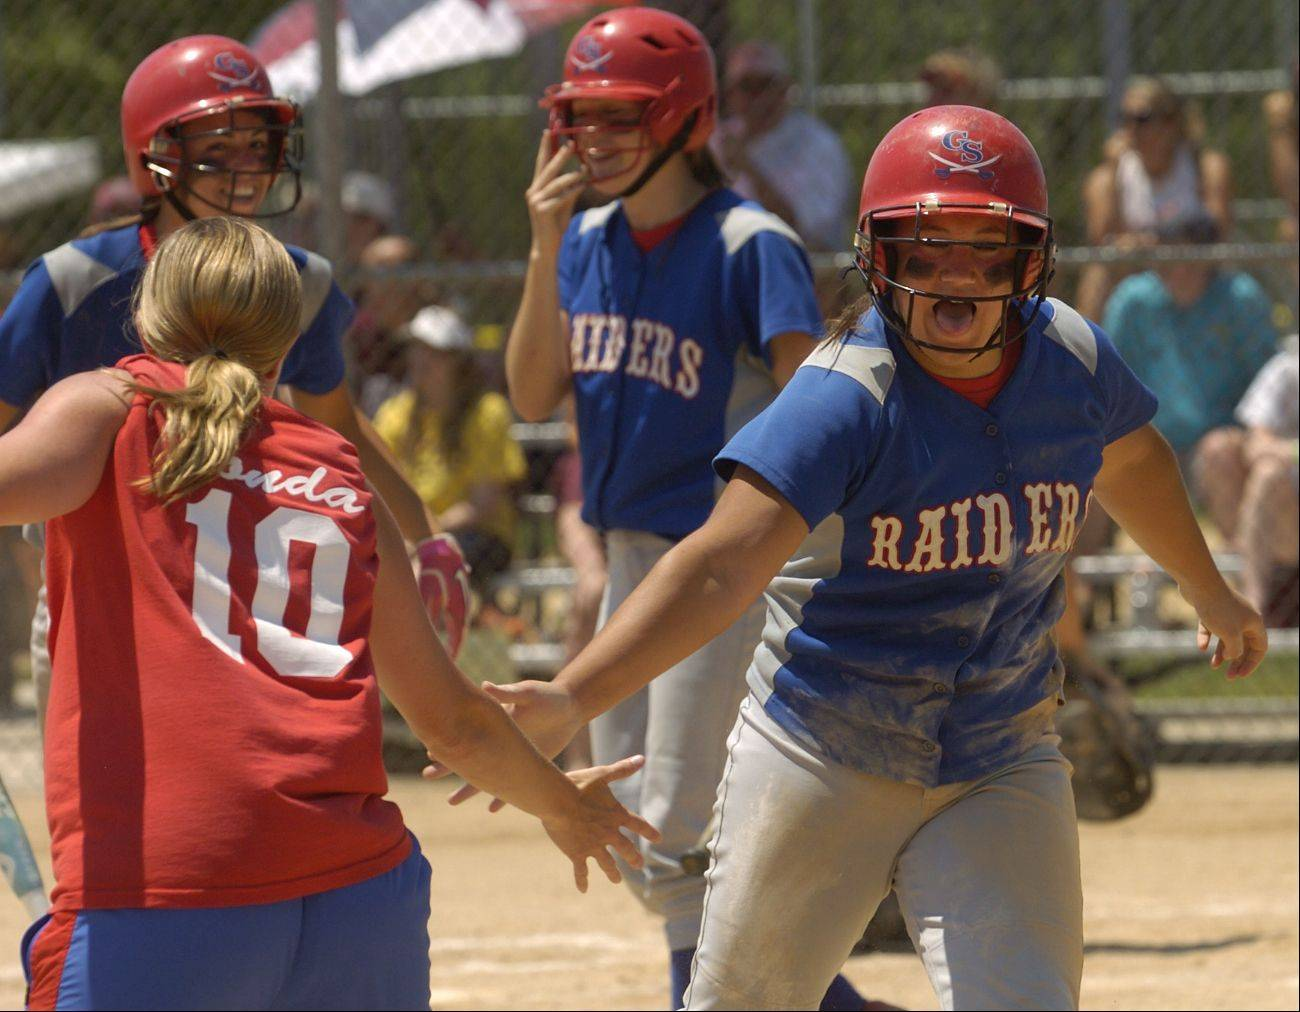 Olivia Ramirez is congratulated by coach Julie Fonda after scoring first of two runs in the 4th inning of the Class 3A state softball final between Marengo and Glenbard South.